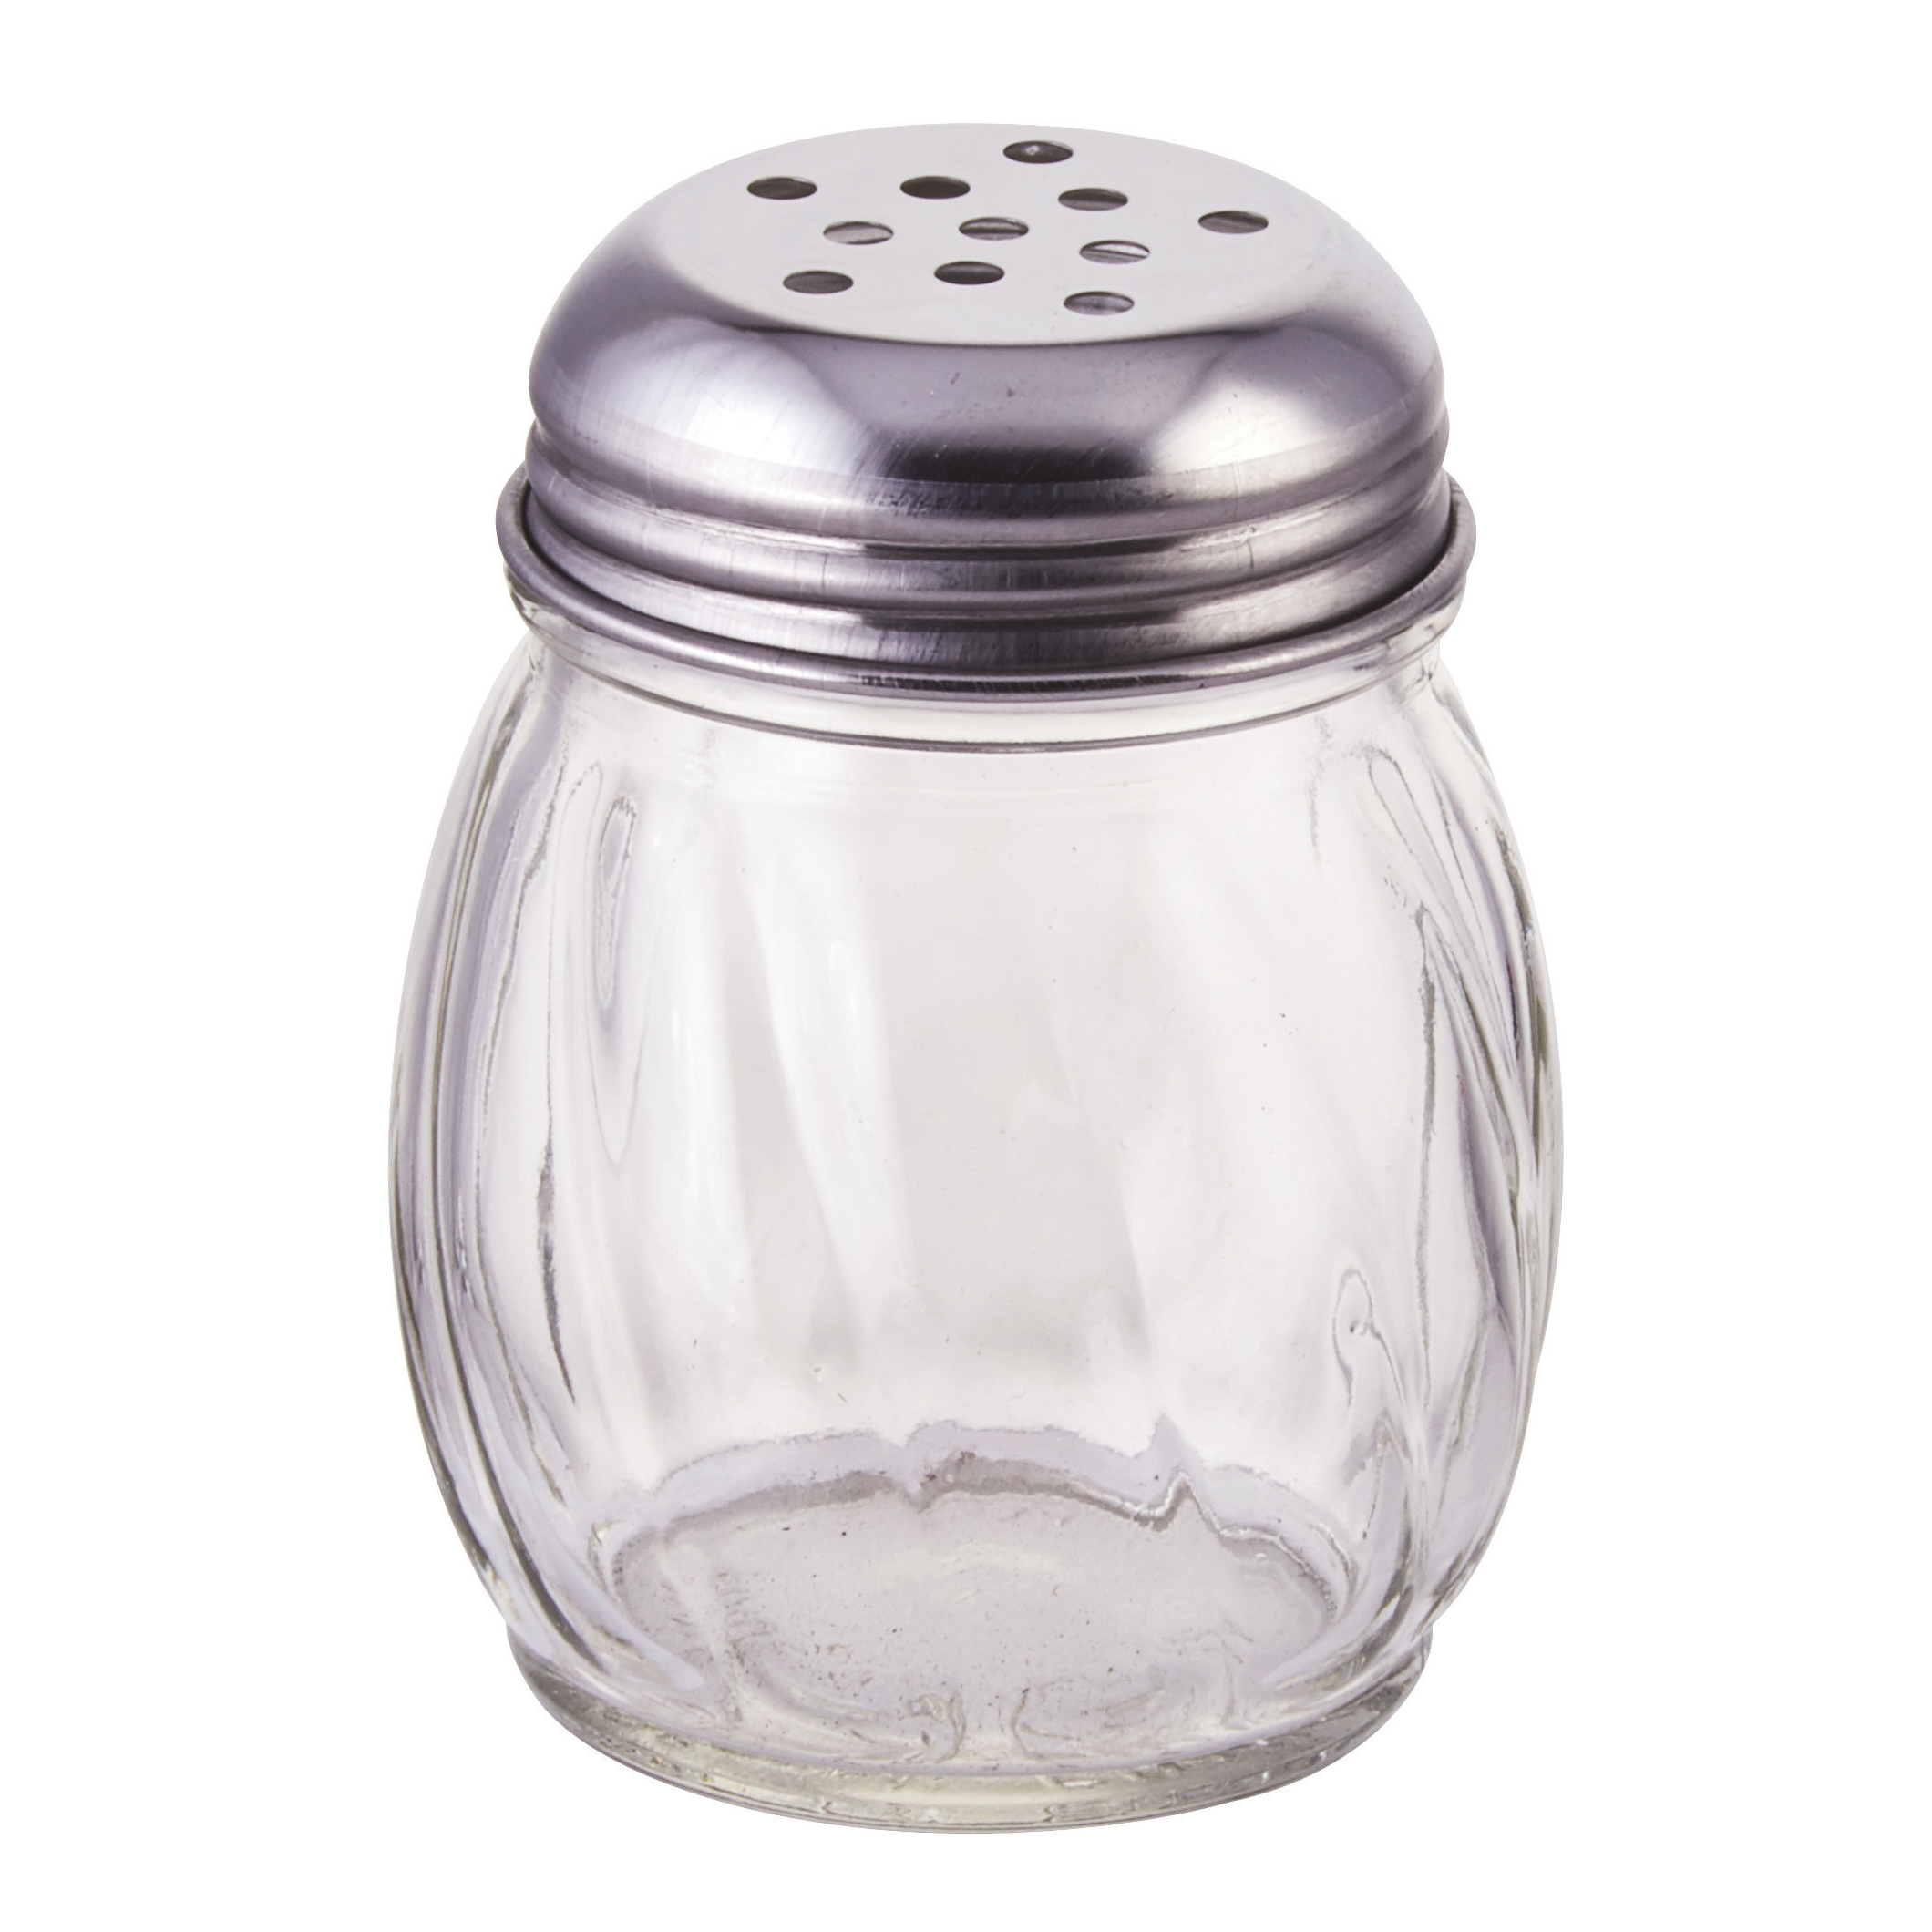 Winco G-107 cheese / spice shaker